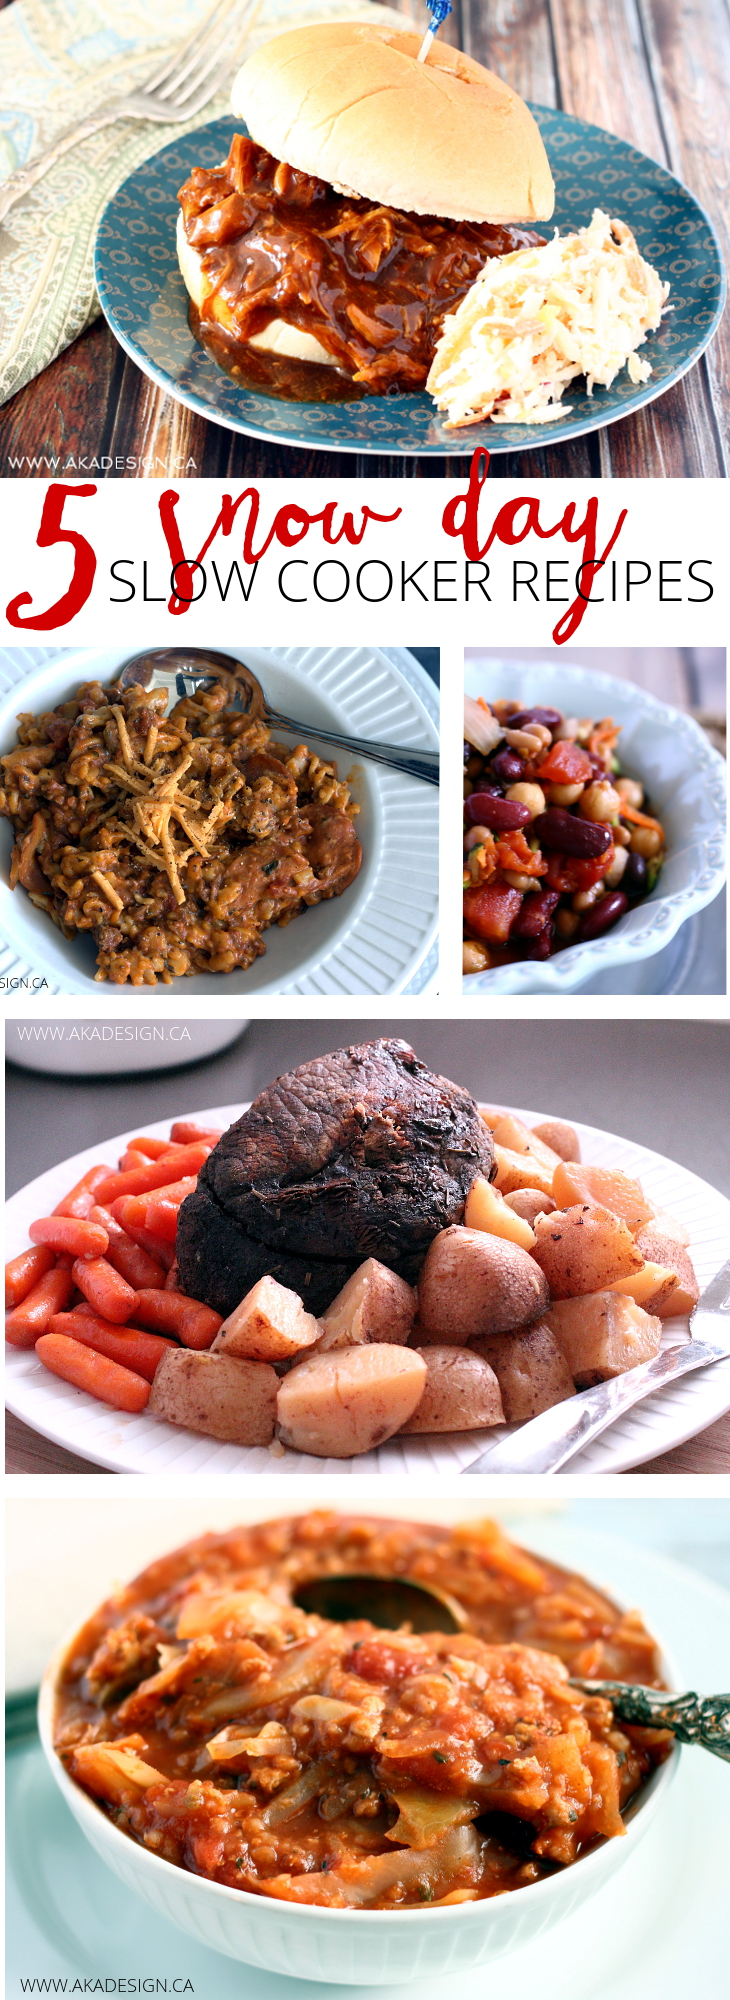 slow cooker meals for a snow day